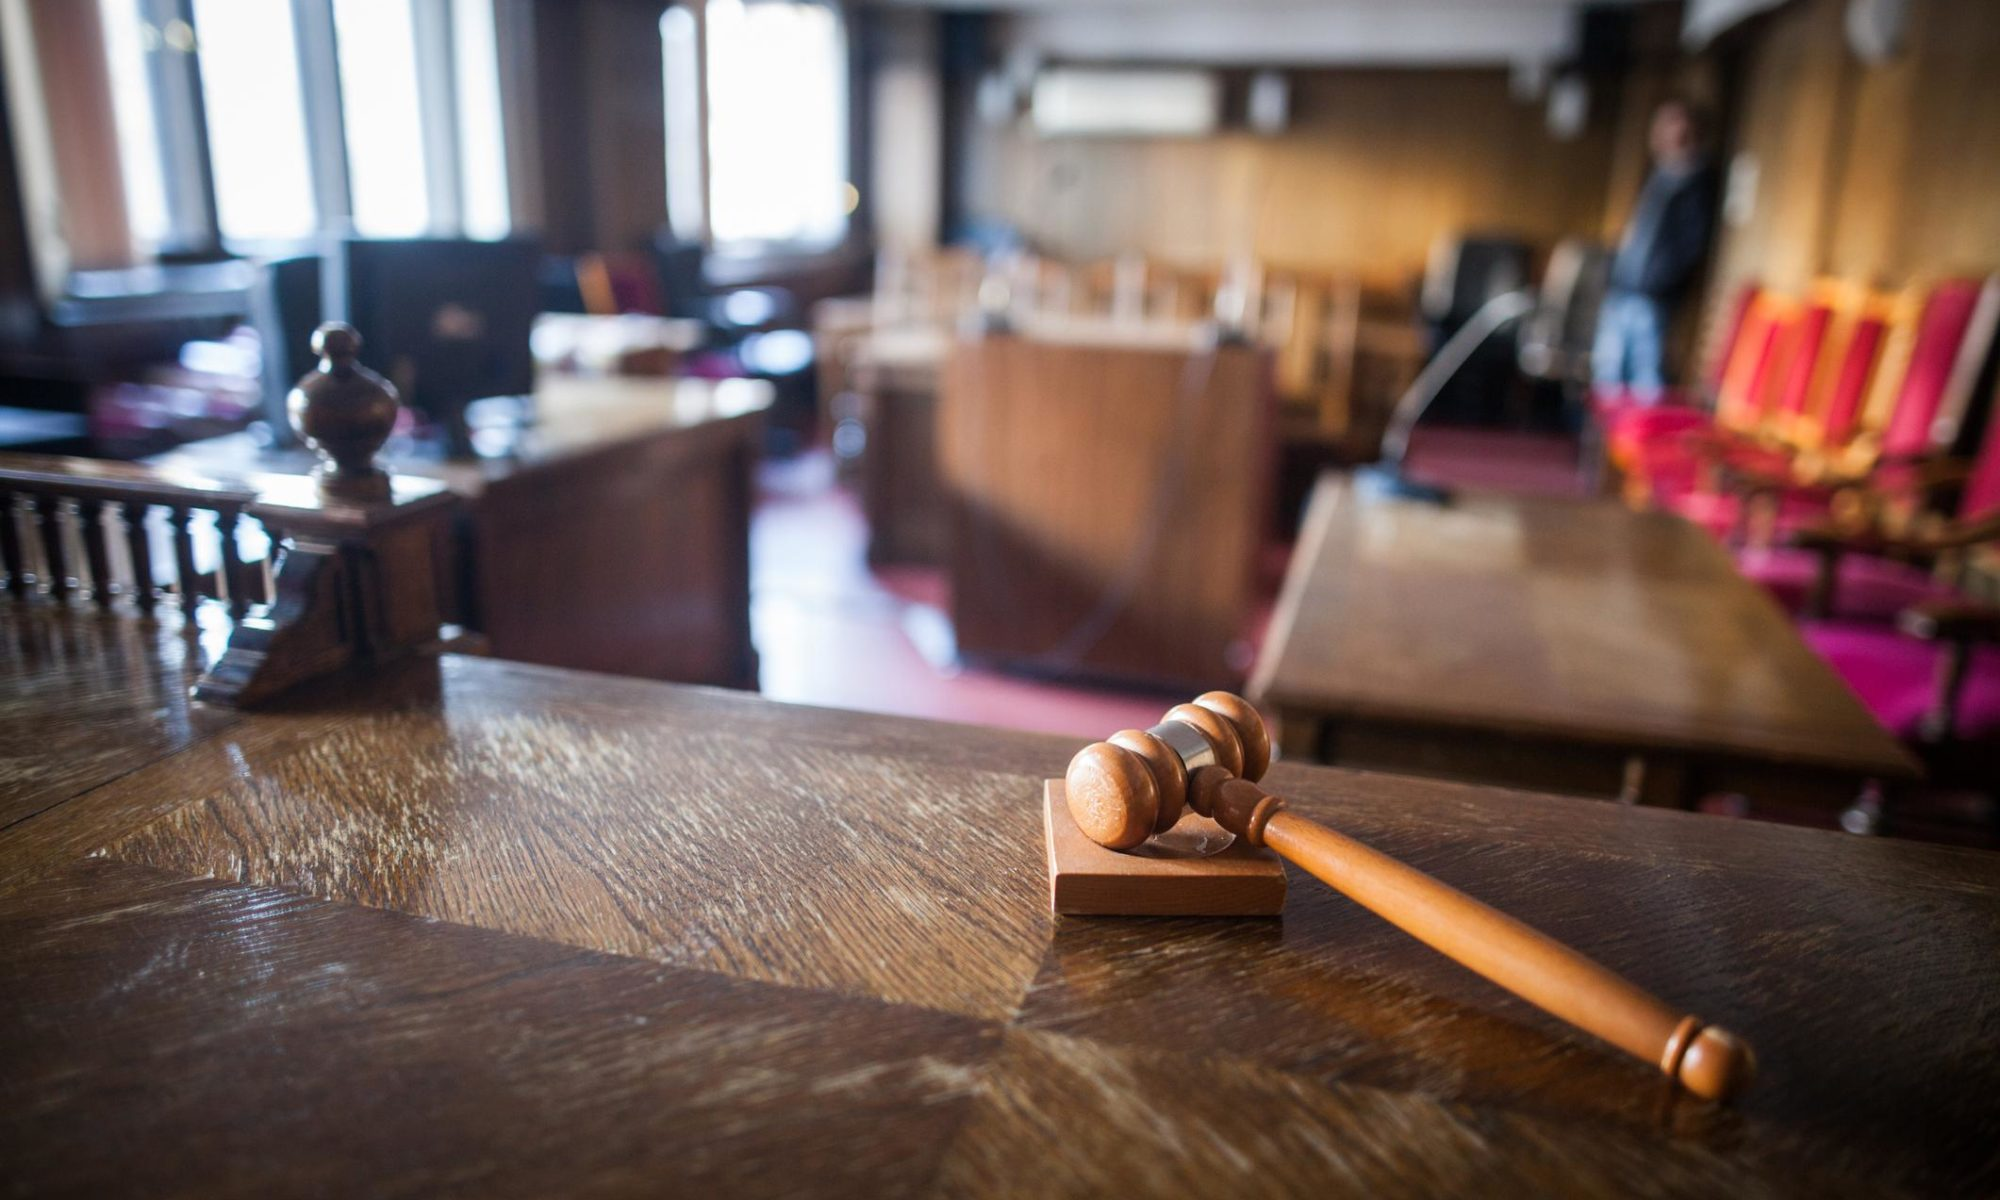 Truck Accident: Will My Case Go to Trial?